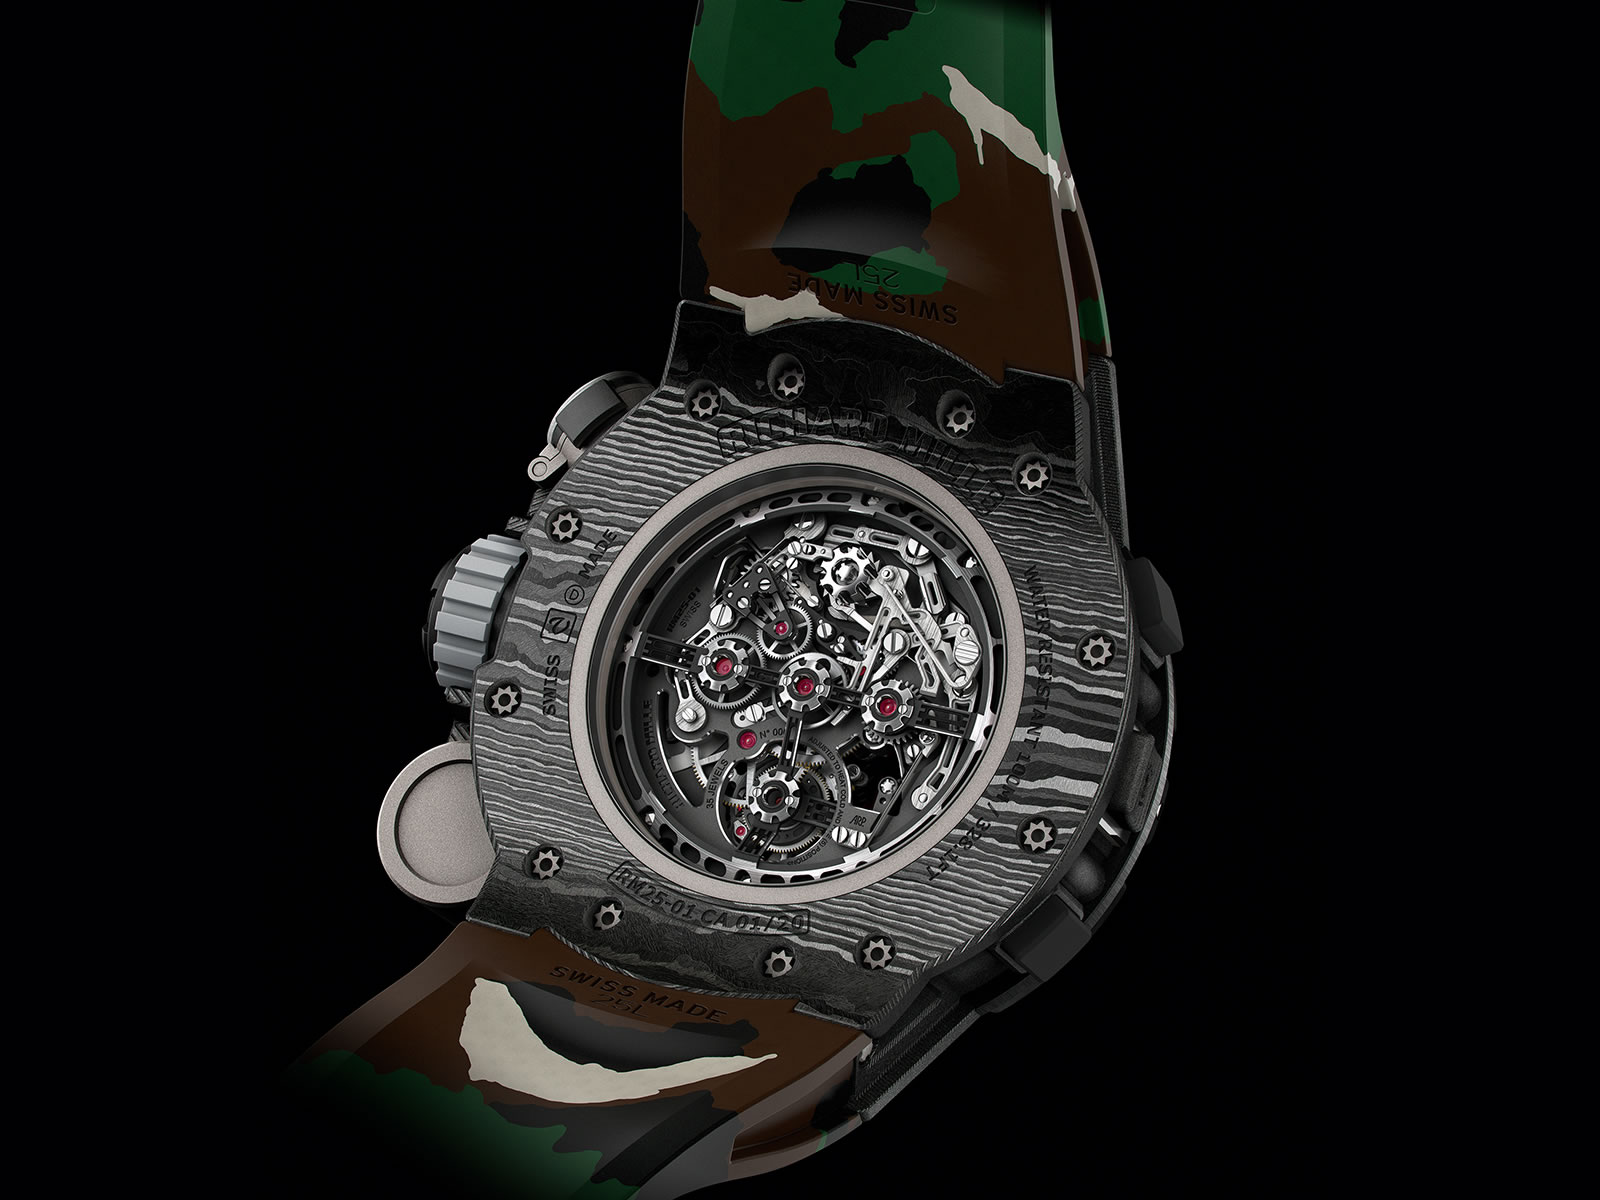 richard-mille-rm-25-01-tourbillon-adventure-sylvester-stallone-8-.jpg